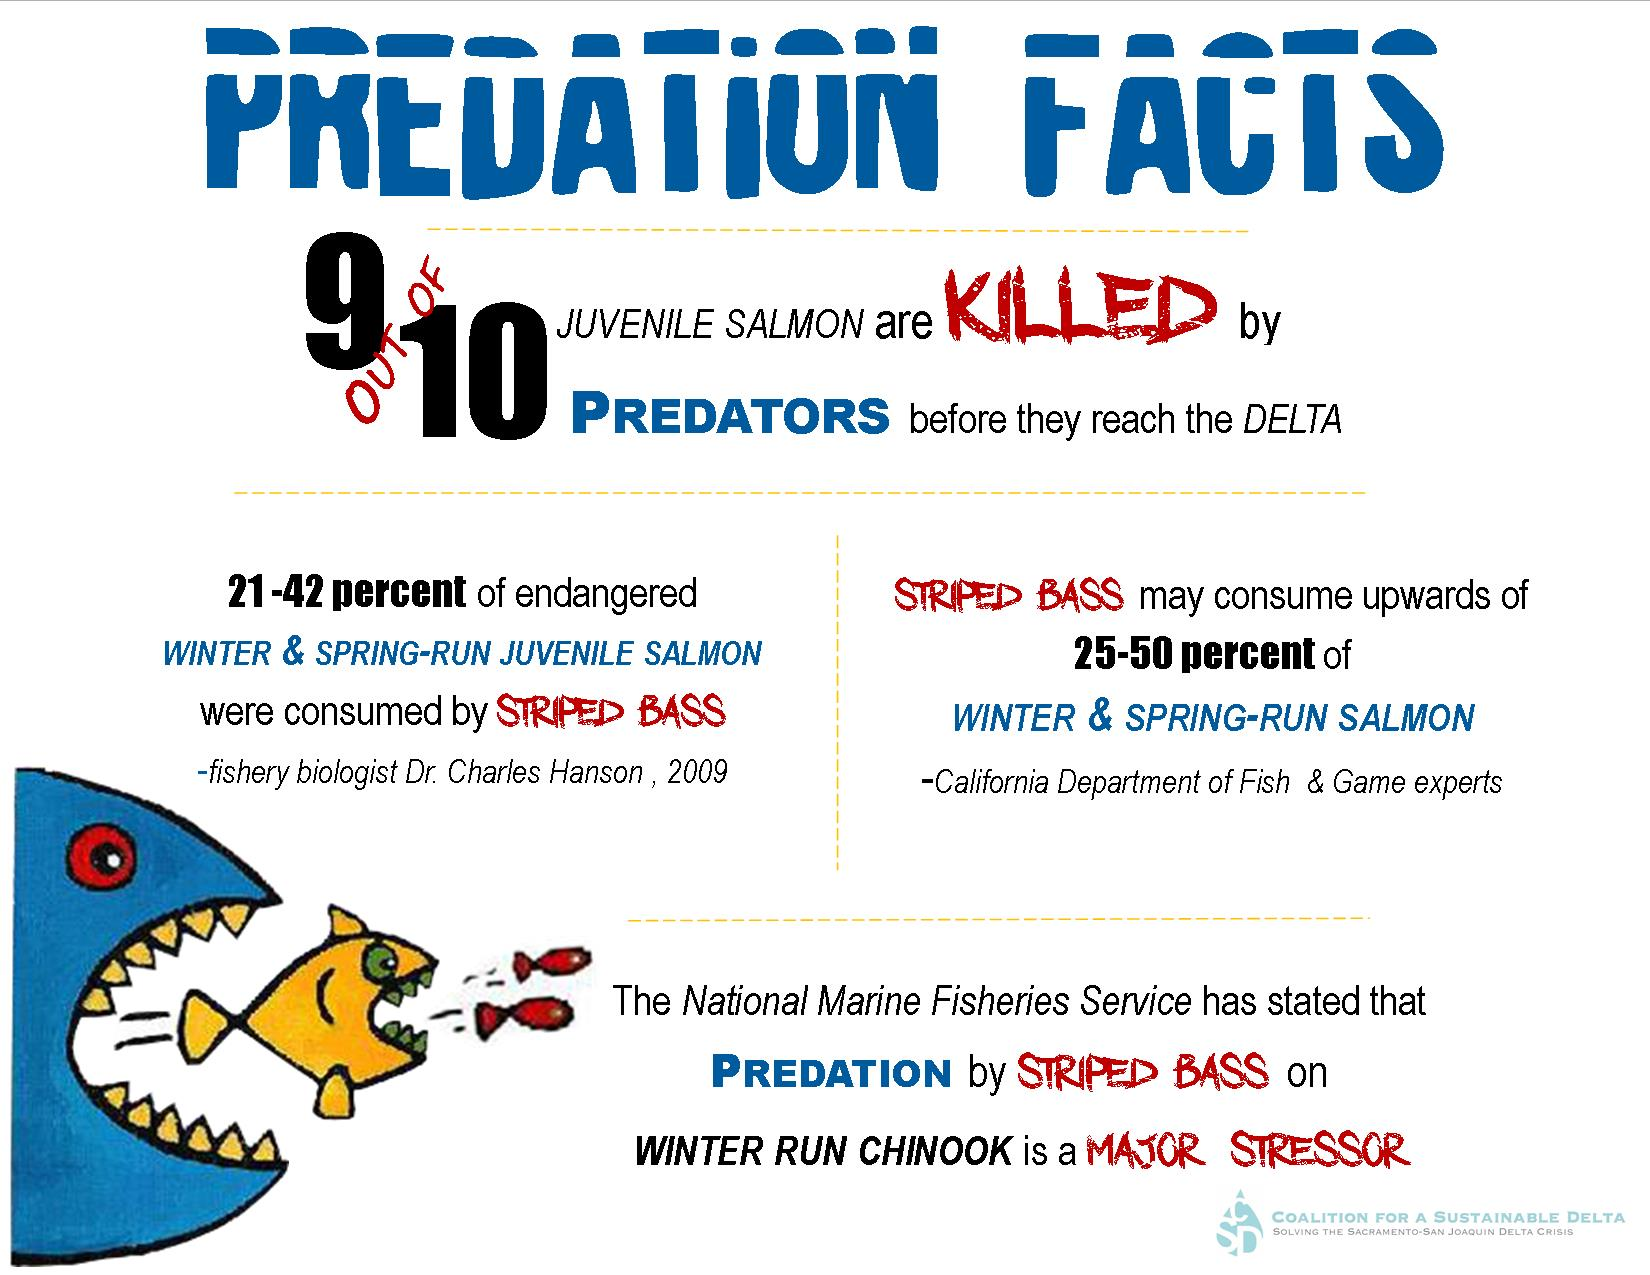 Predation Facts (landscape)